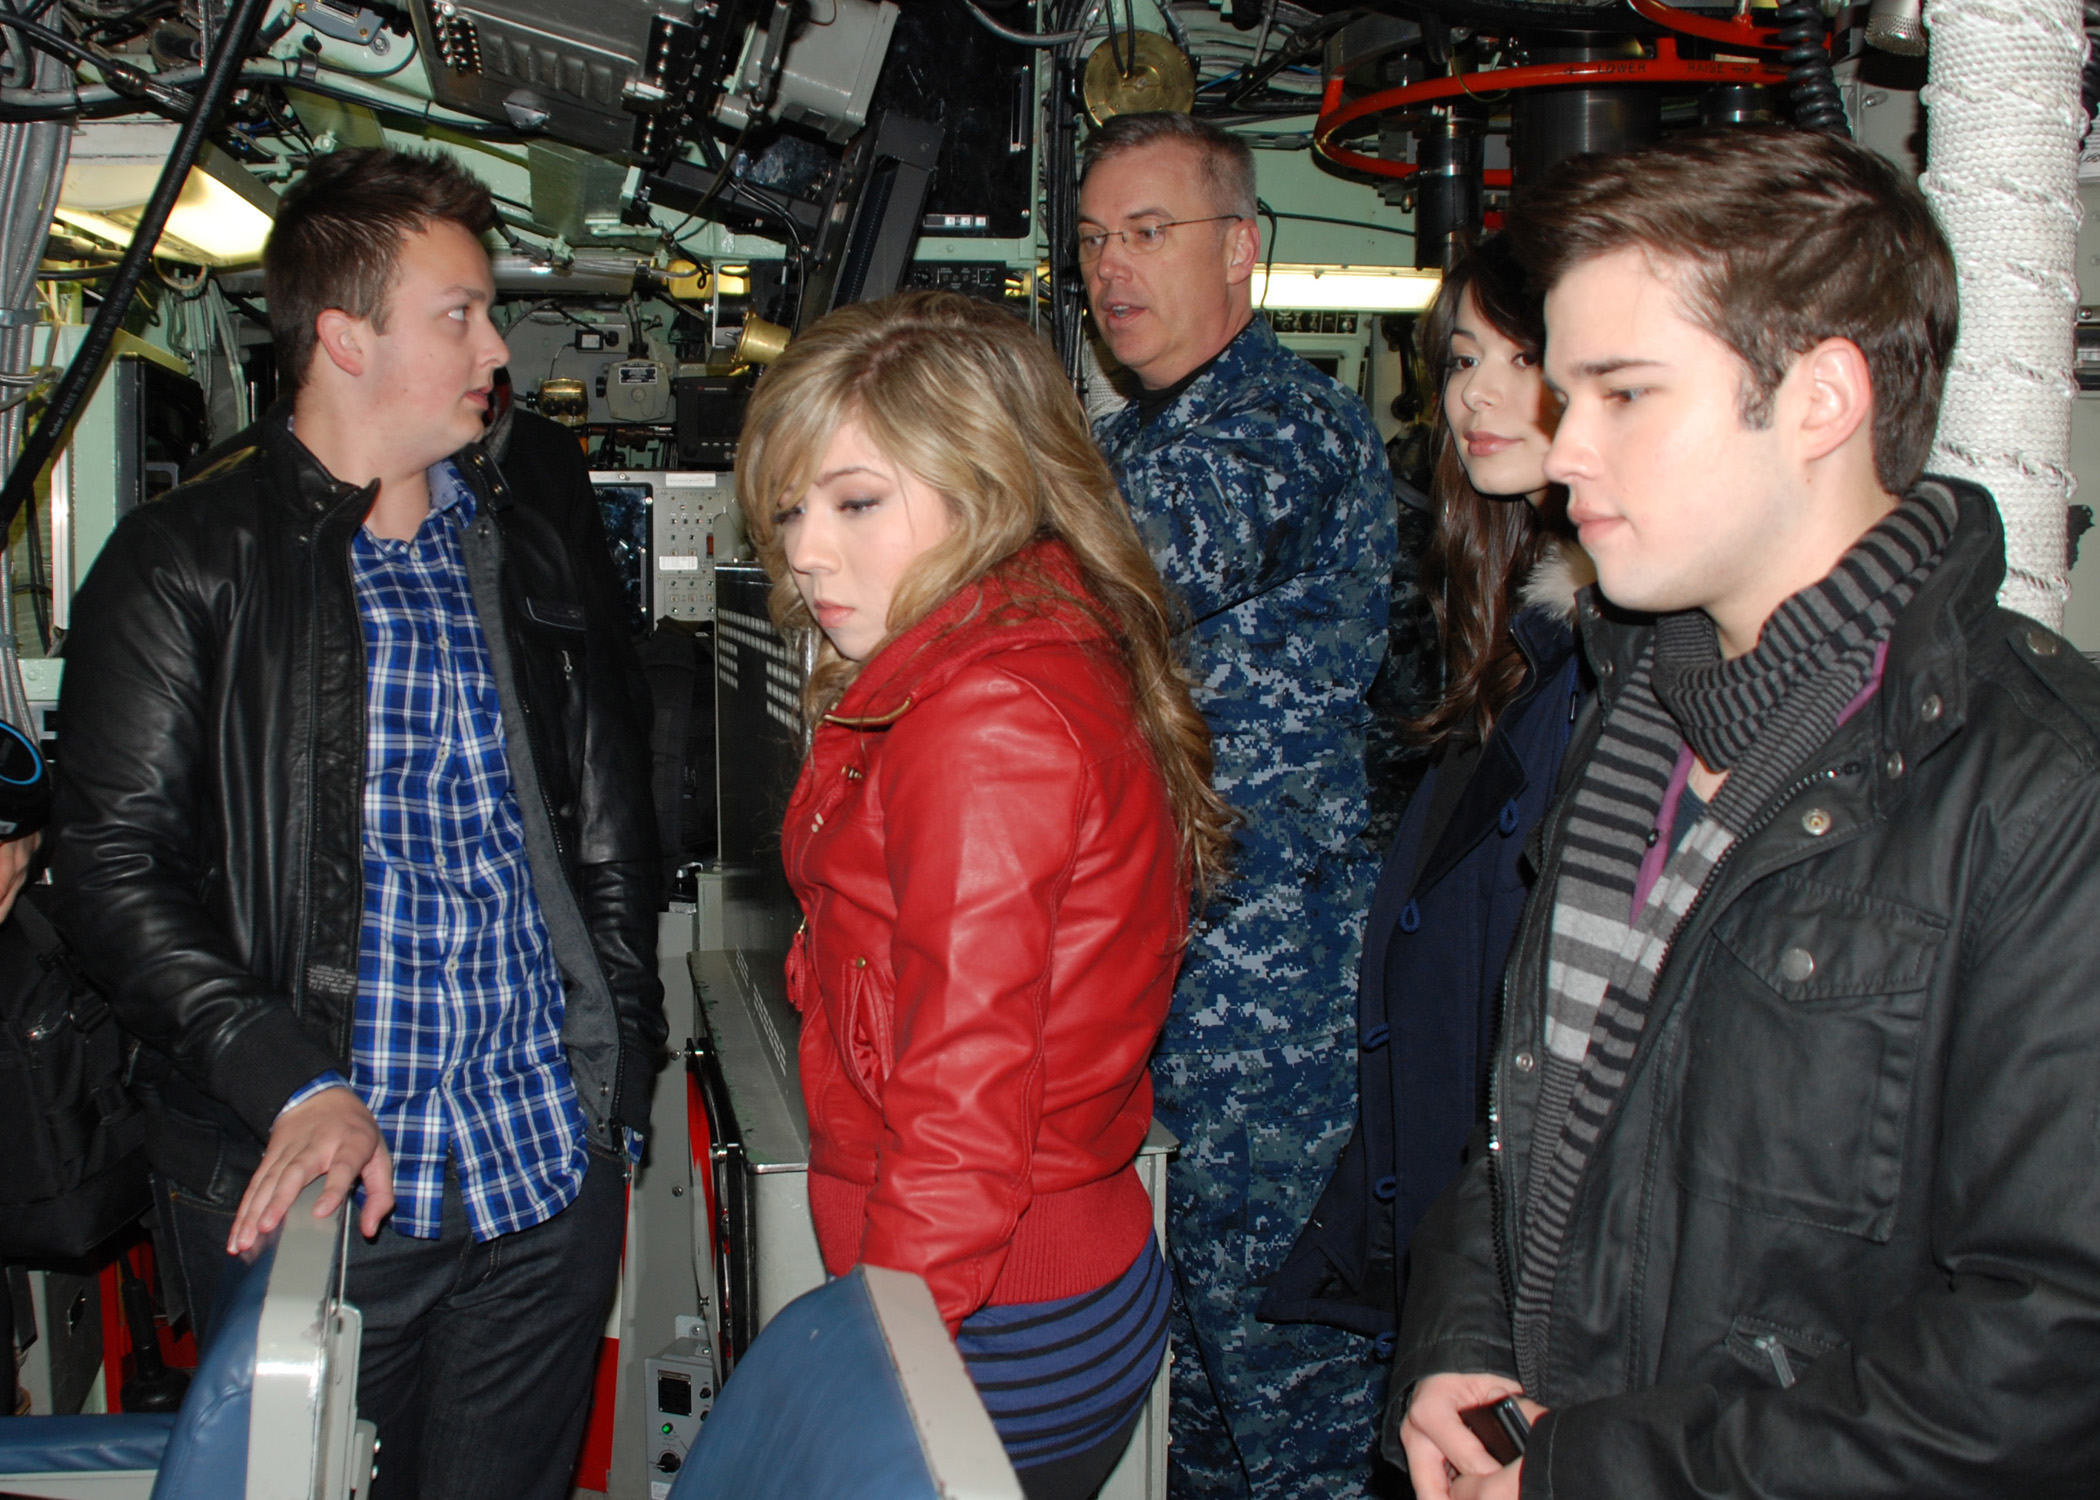 of Nickelodeon's TV show iCarly a tour of the submarine's control room. The cast visited Naval Submarine Base New London to show a special screening of